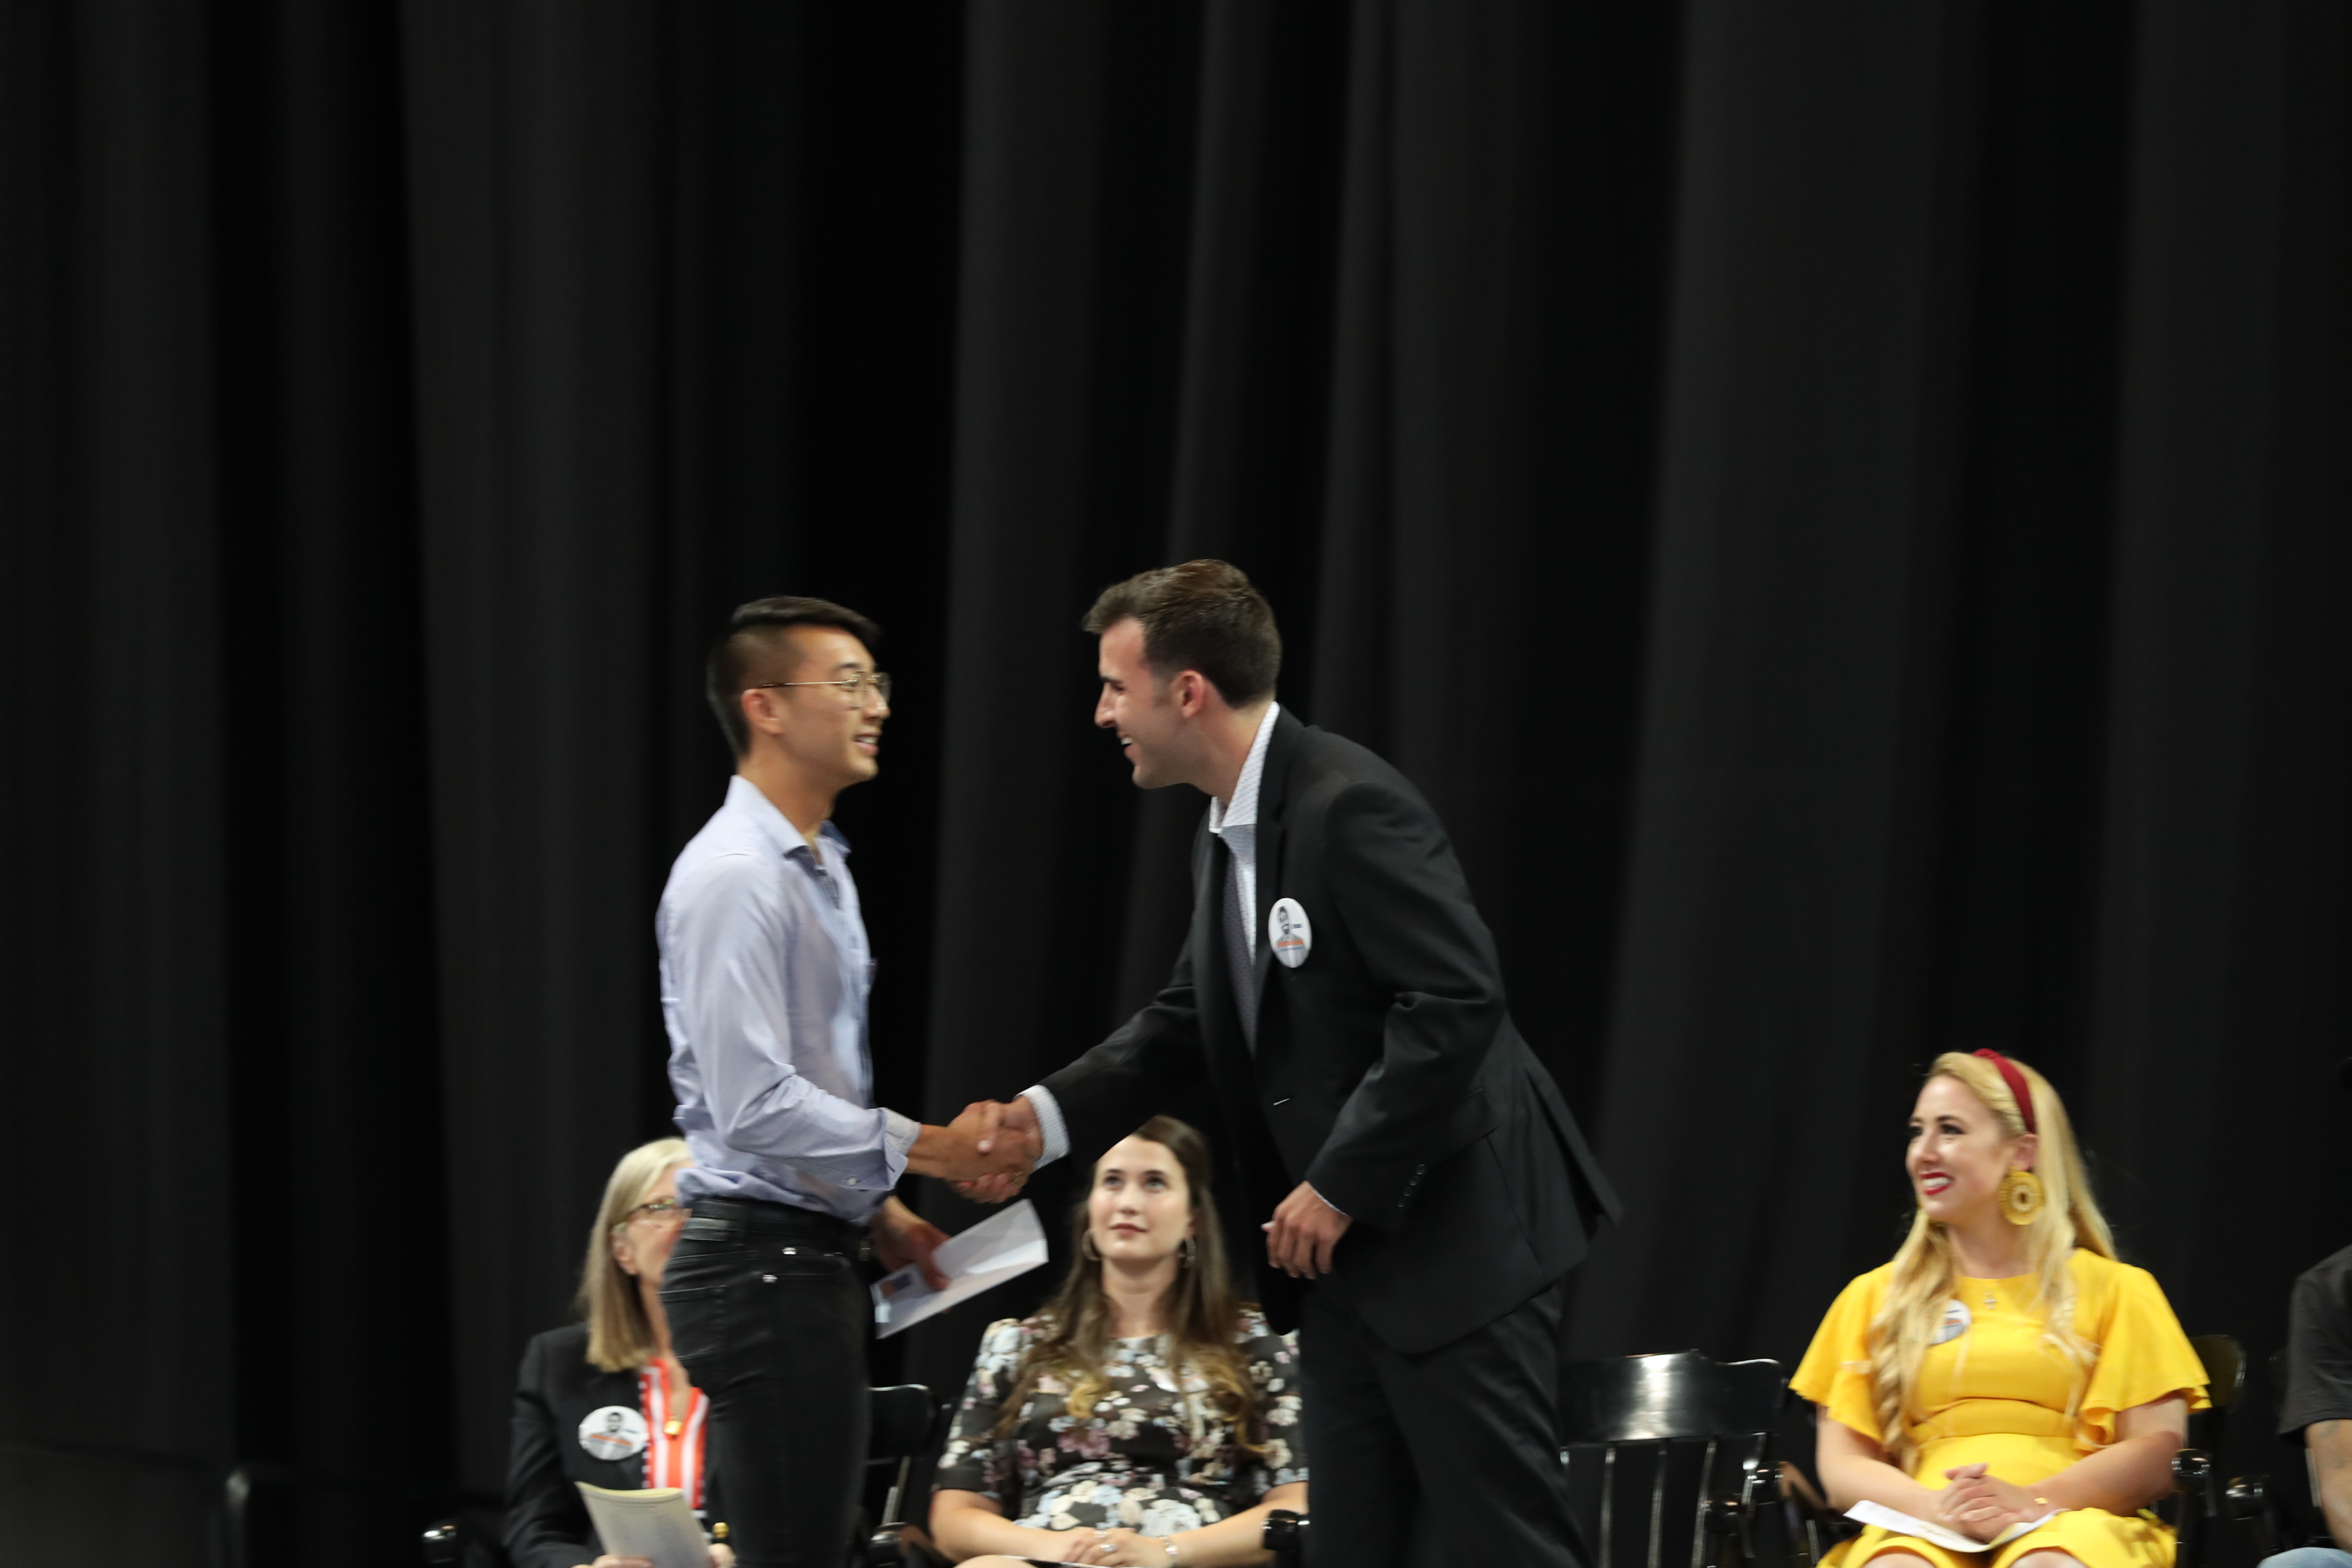 Nicholas Tully presented the Seven Society's James Earle Sargeant Award to the Living Wage Campaign, accepted by Todd Lee.